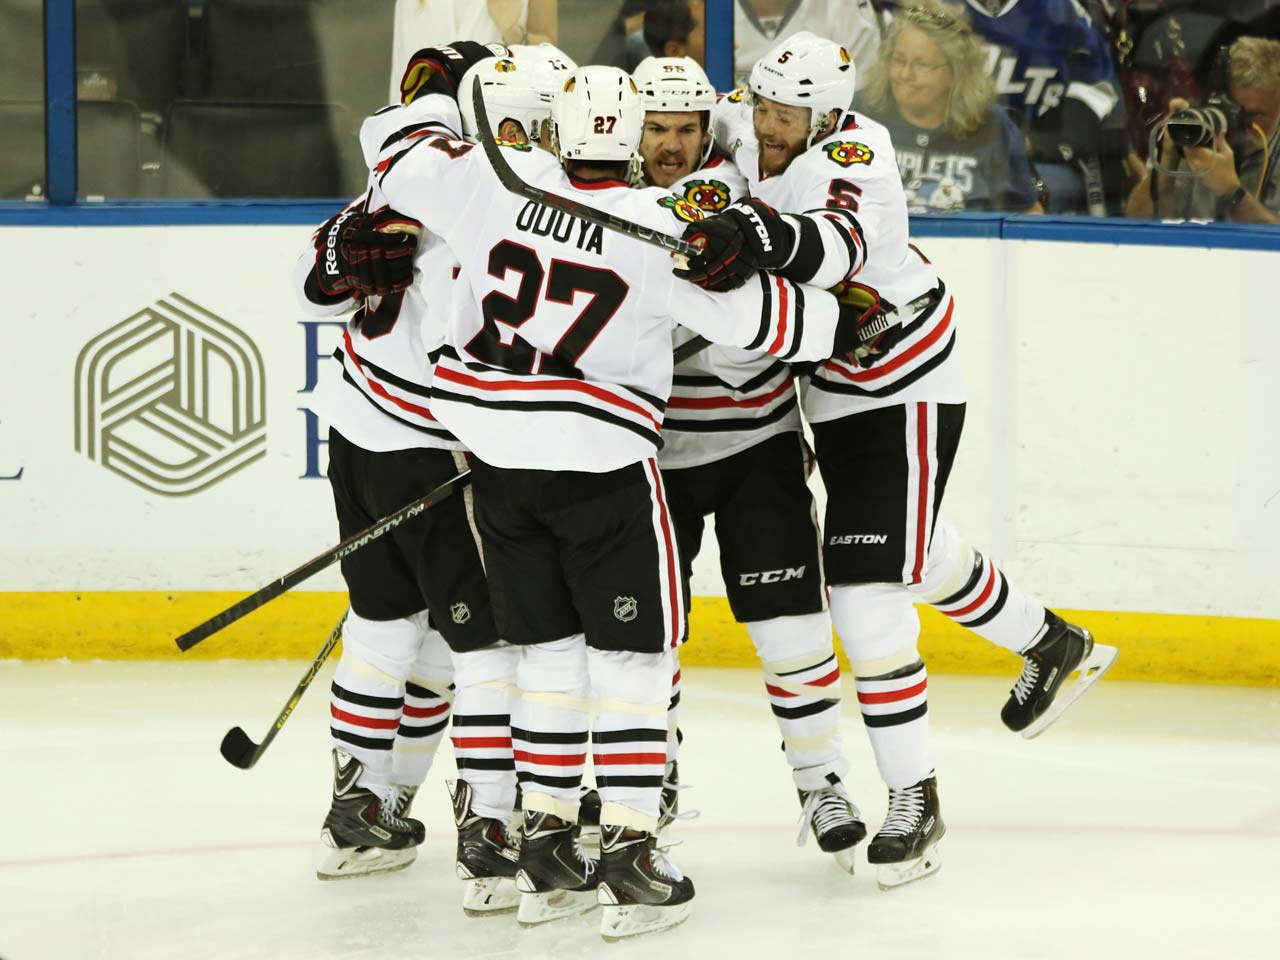 The Blackhawks celebrate after Andrew Shaw scored a goal in the second period.